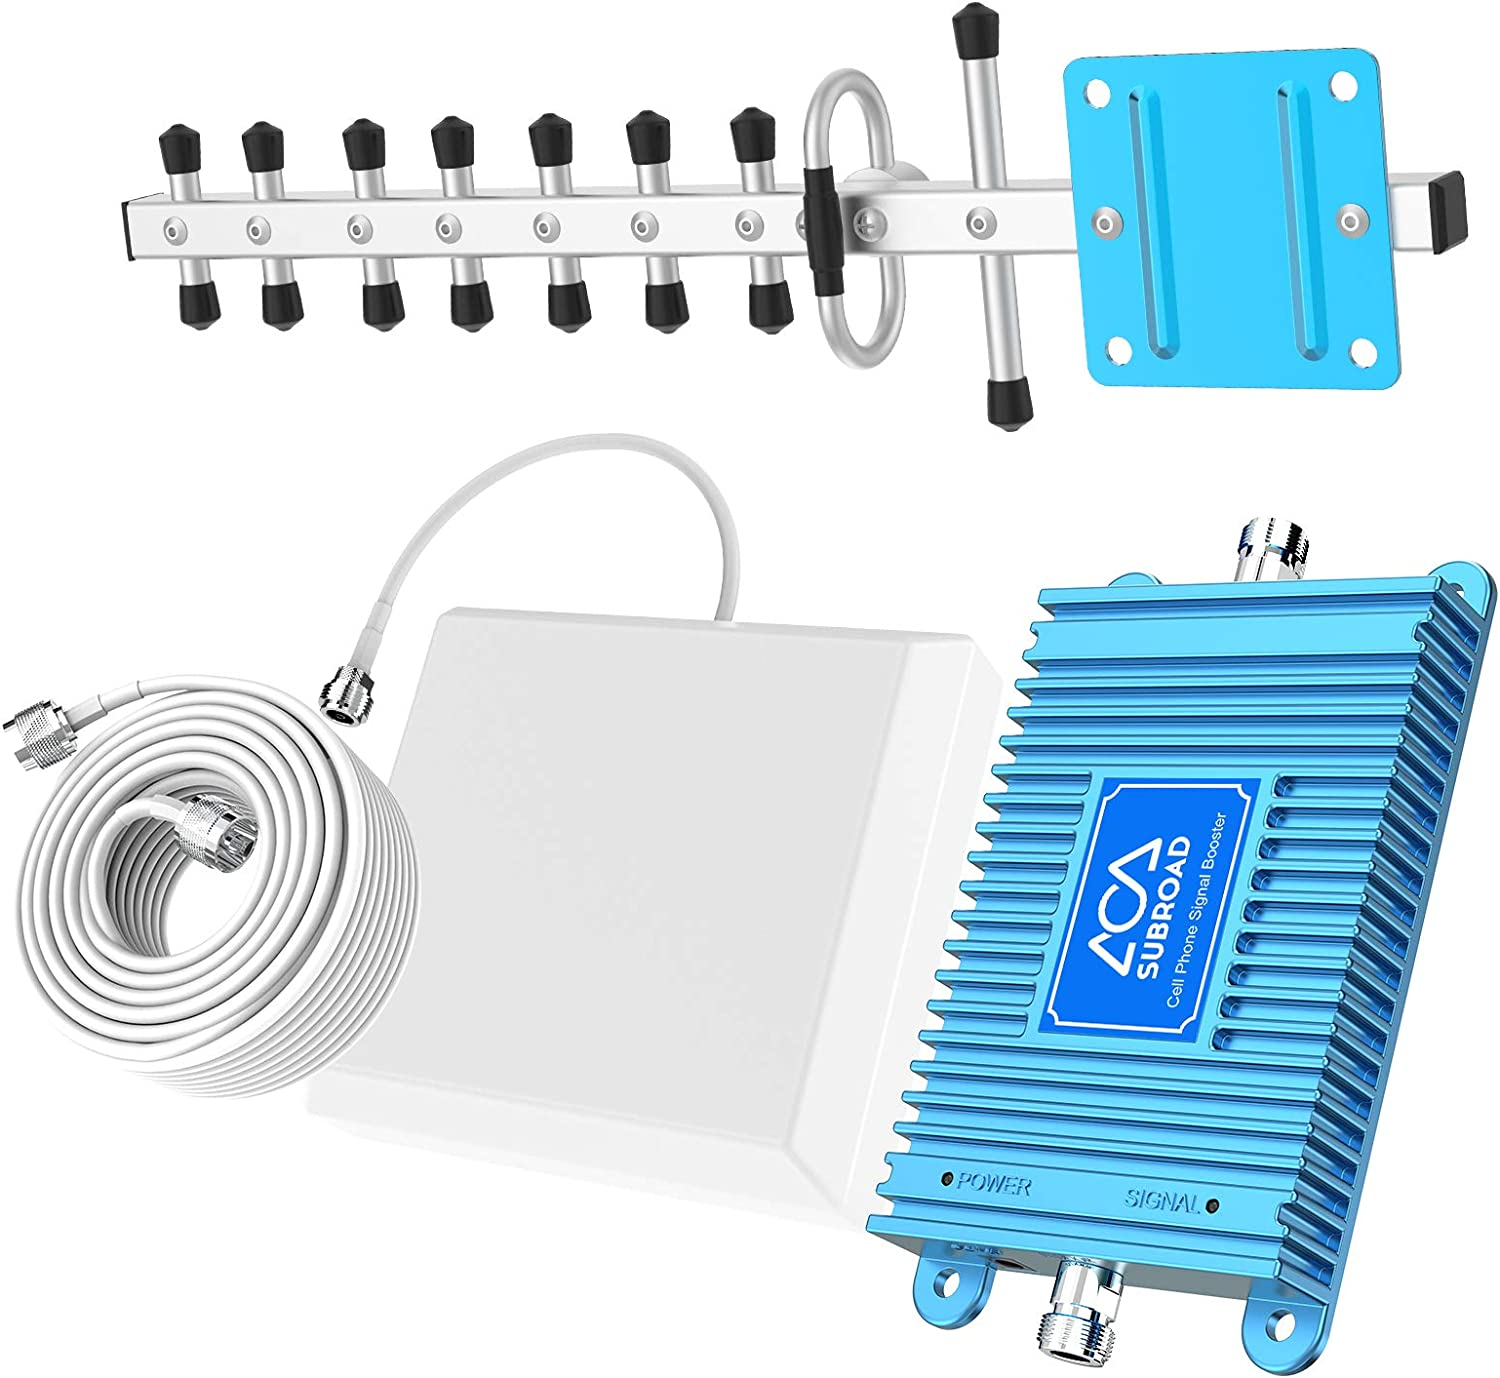 Cell SALENEW very popular! Phone Signal Booster for Home and - Band 1700 Max 79% OFF 66 4 Office